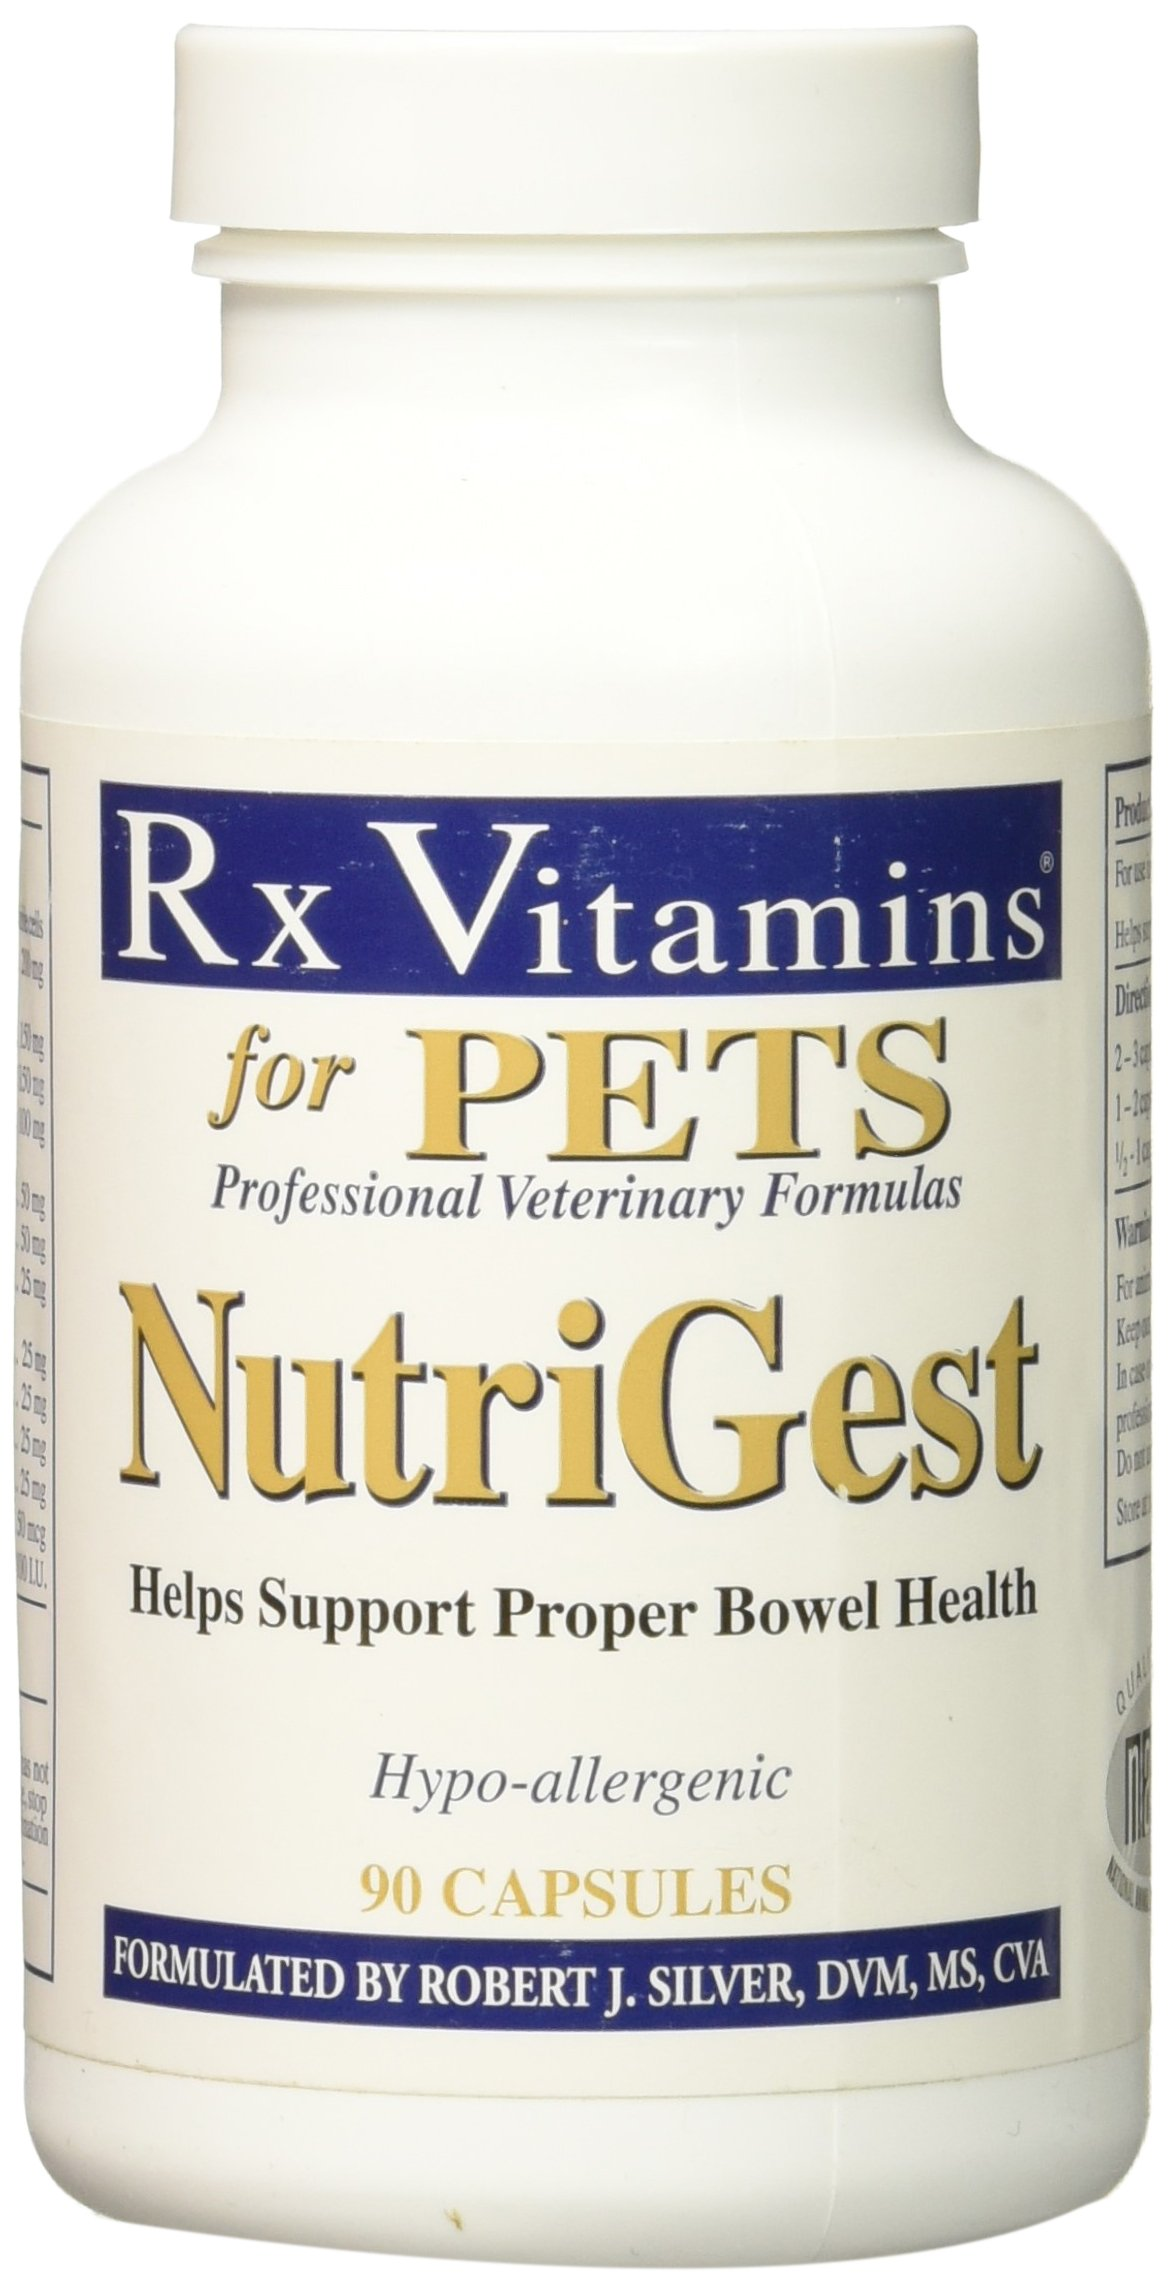 Rx Vitamins Nutrigest 90 Capsules for Dogs and Cats, One Size